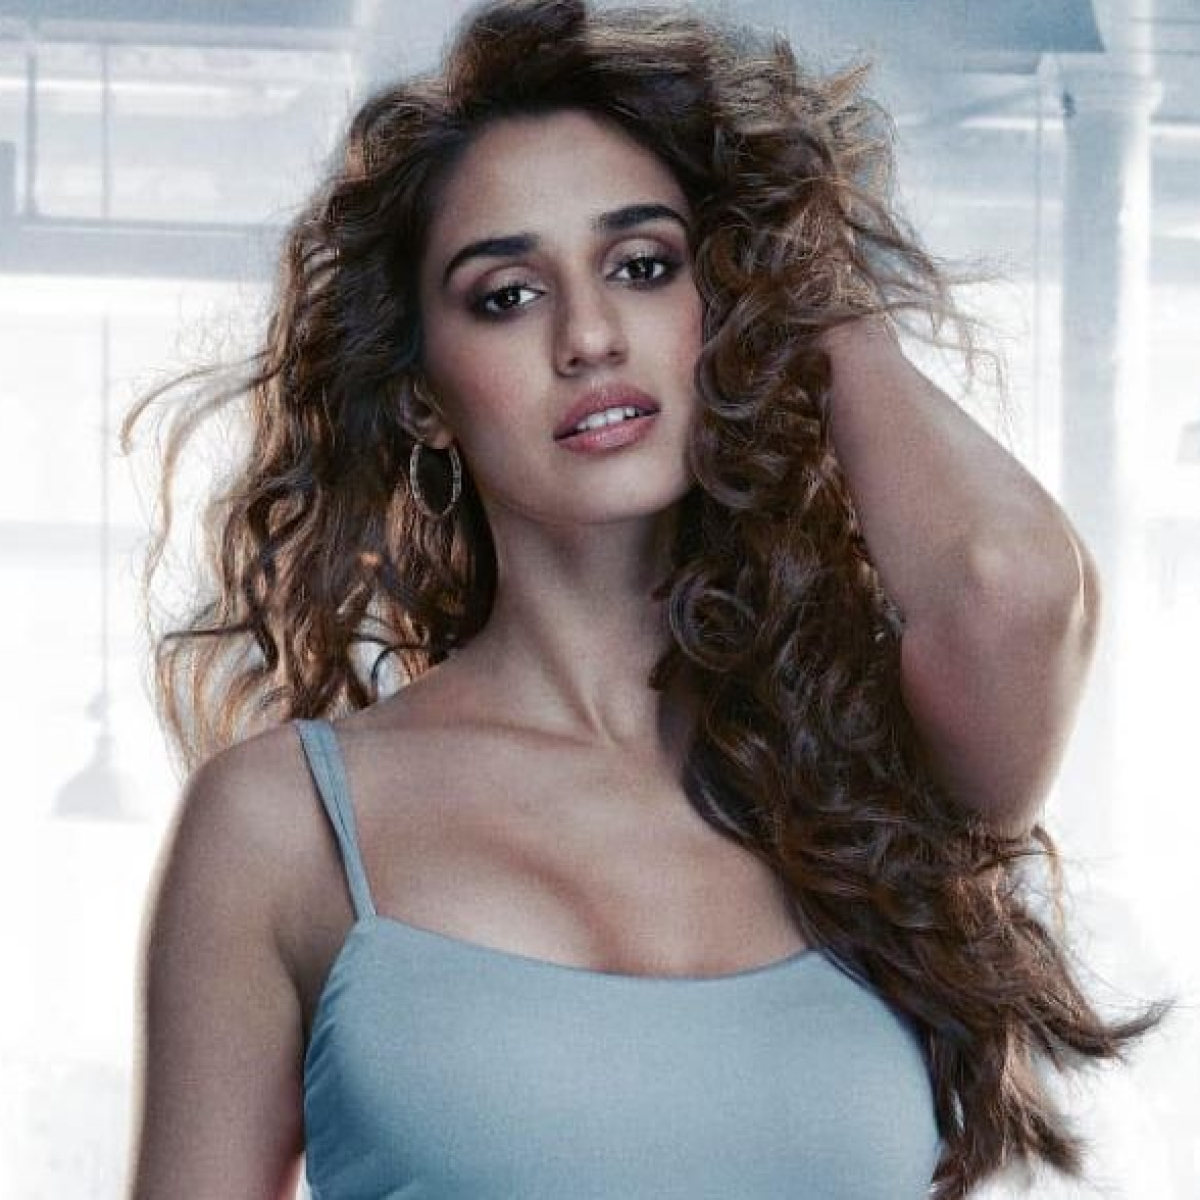 'I drew inspiration from everyday girls': Disha Patani on her role in 'Radhe: Your Most Wanted Bhai'